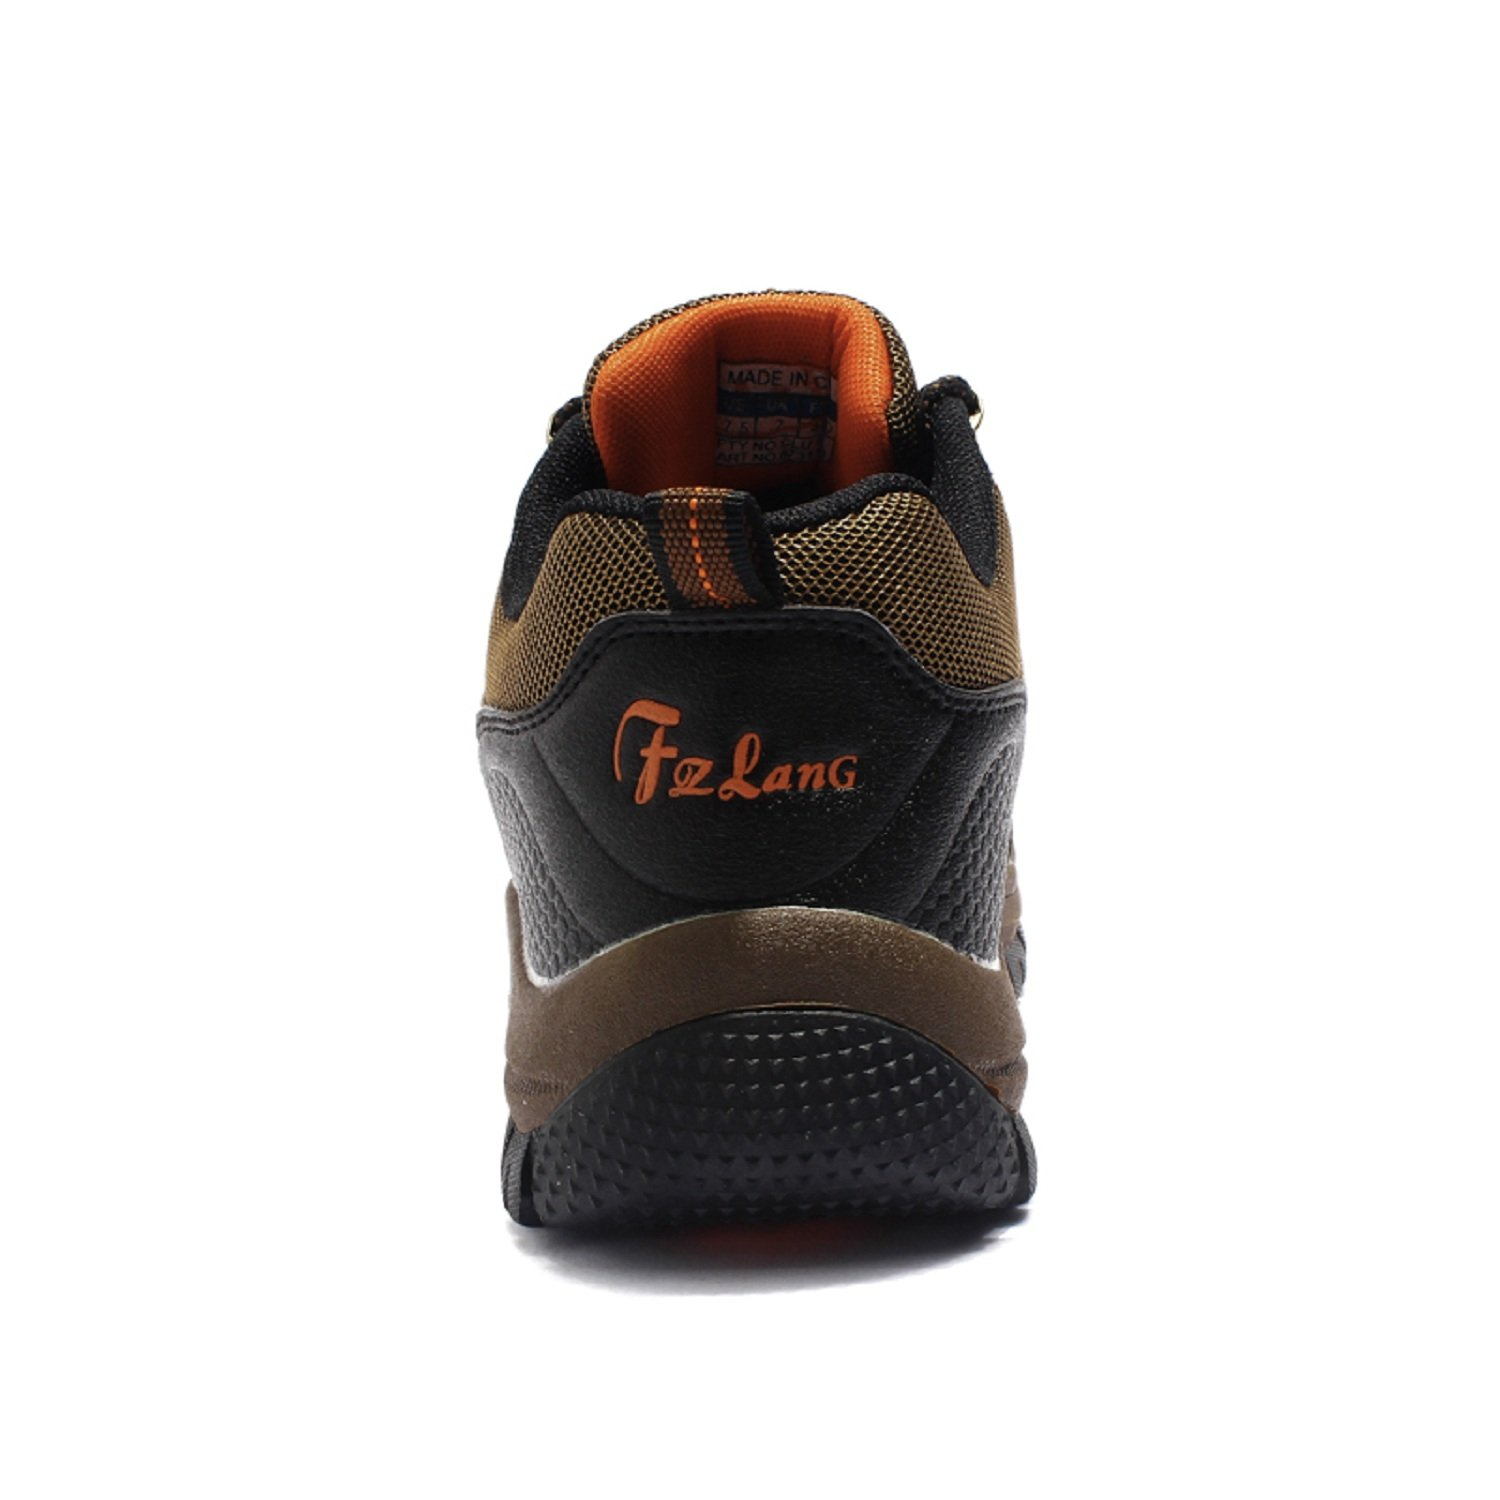 T-Gold 2017 Men's Waterproof Low Hiking Shoe Outdoor Breathable Climing Trekking Sports Summer by T-Gold (Image #3)